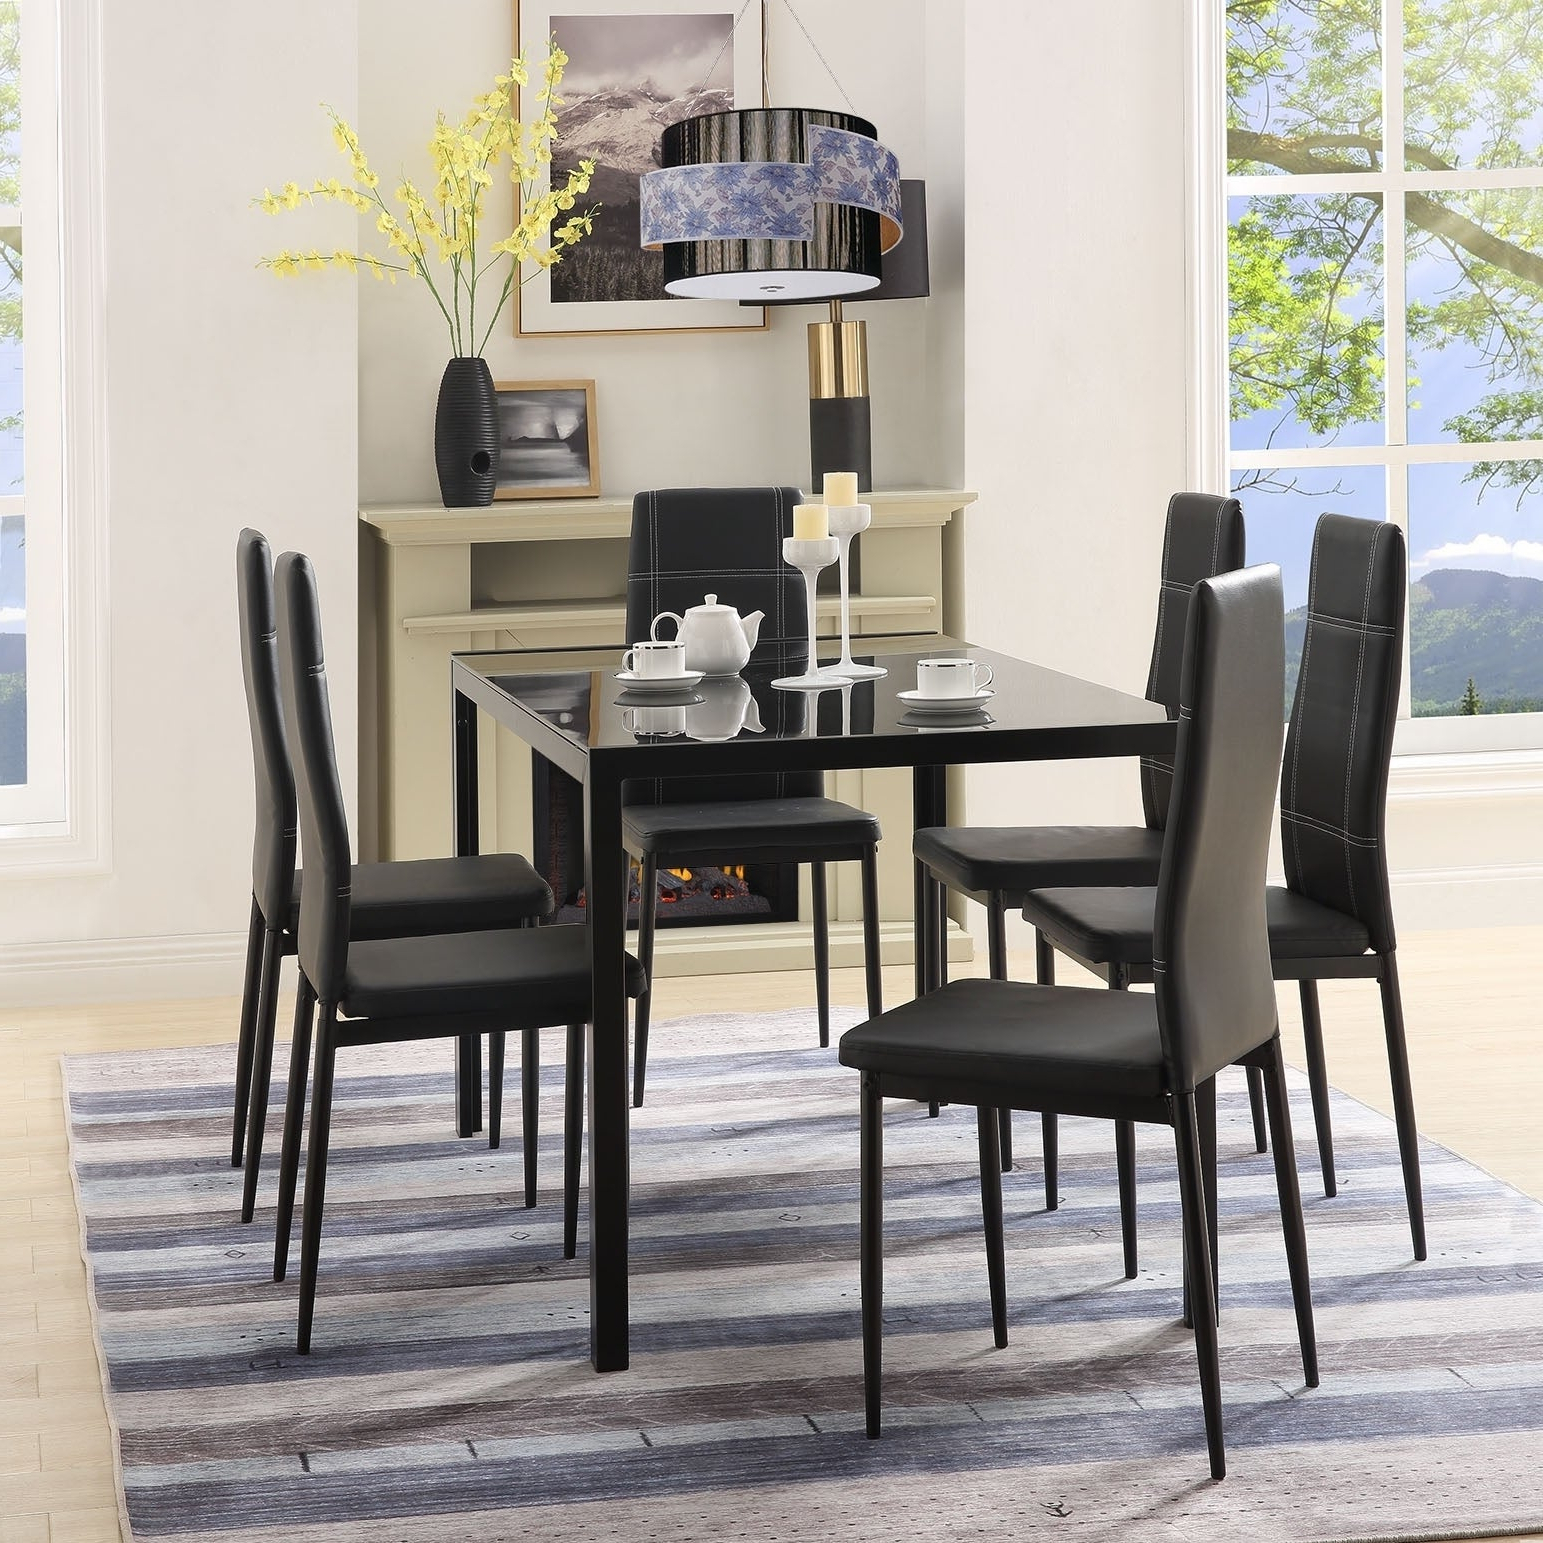 Shop Merax 7 Piece Dining Set Glass Top Metal Table 6 Person Table With Regard To Best And Newest Maynard 5 Piece Dining Sets (View 14 of 25)